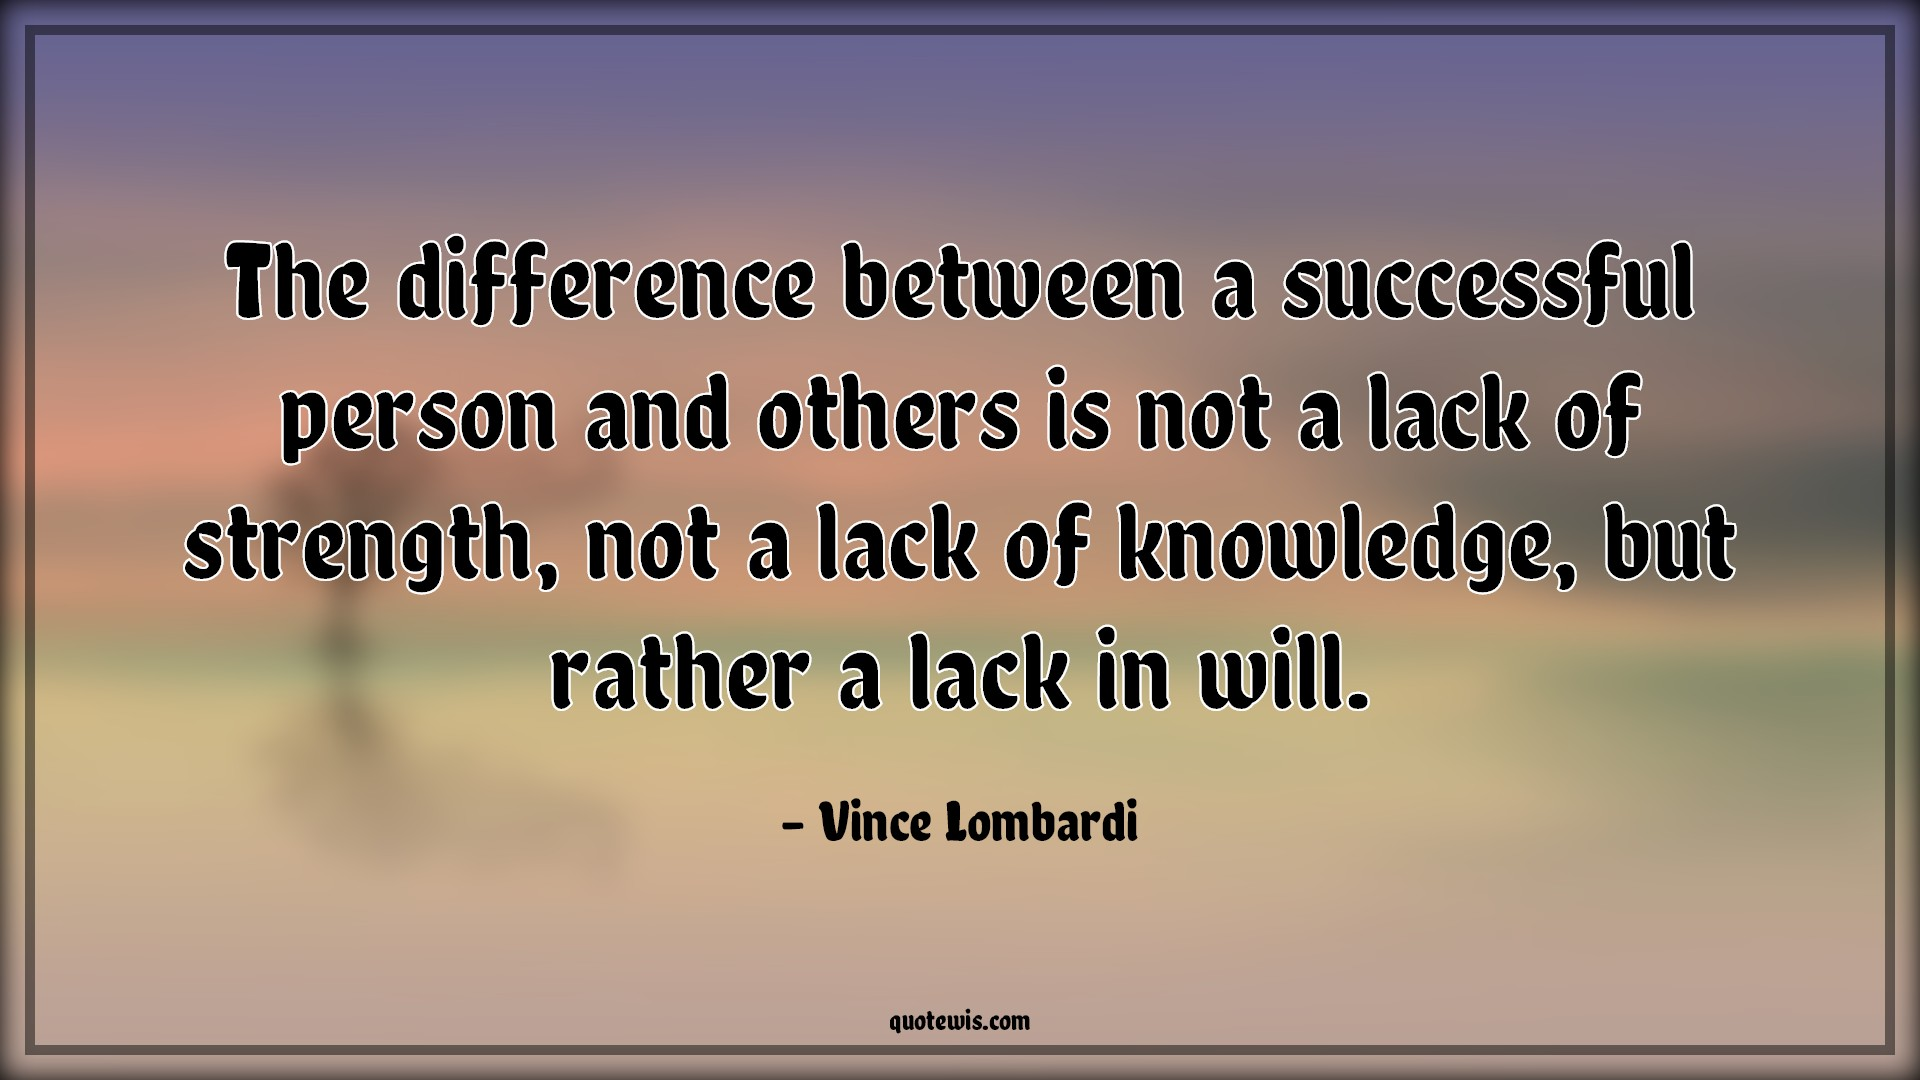 The difference between a successful person and others is not a lack of strength, not a lack of knowledge, but rather a lack in will.